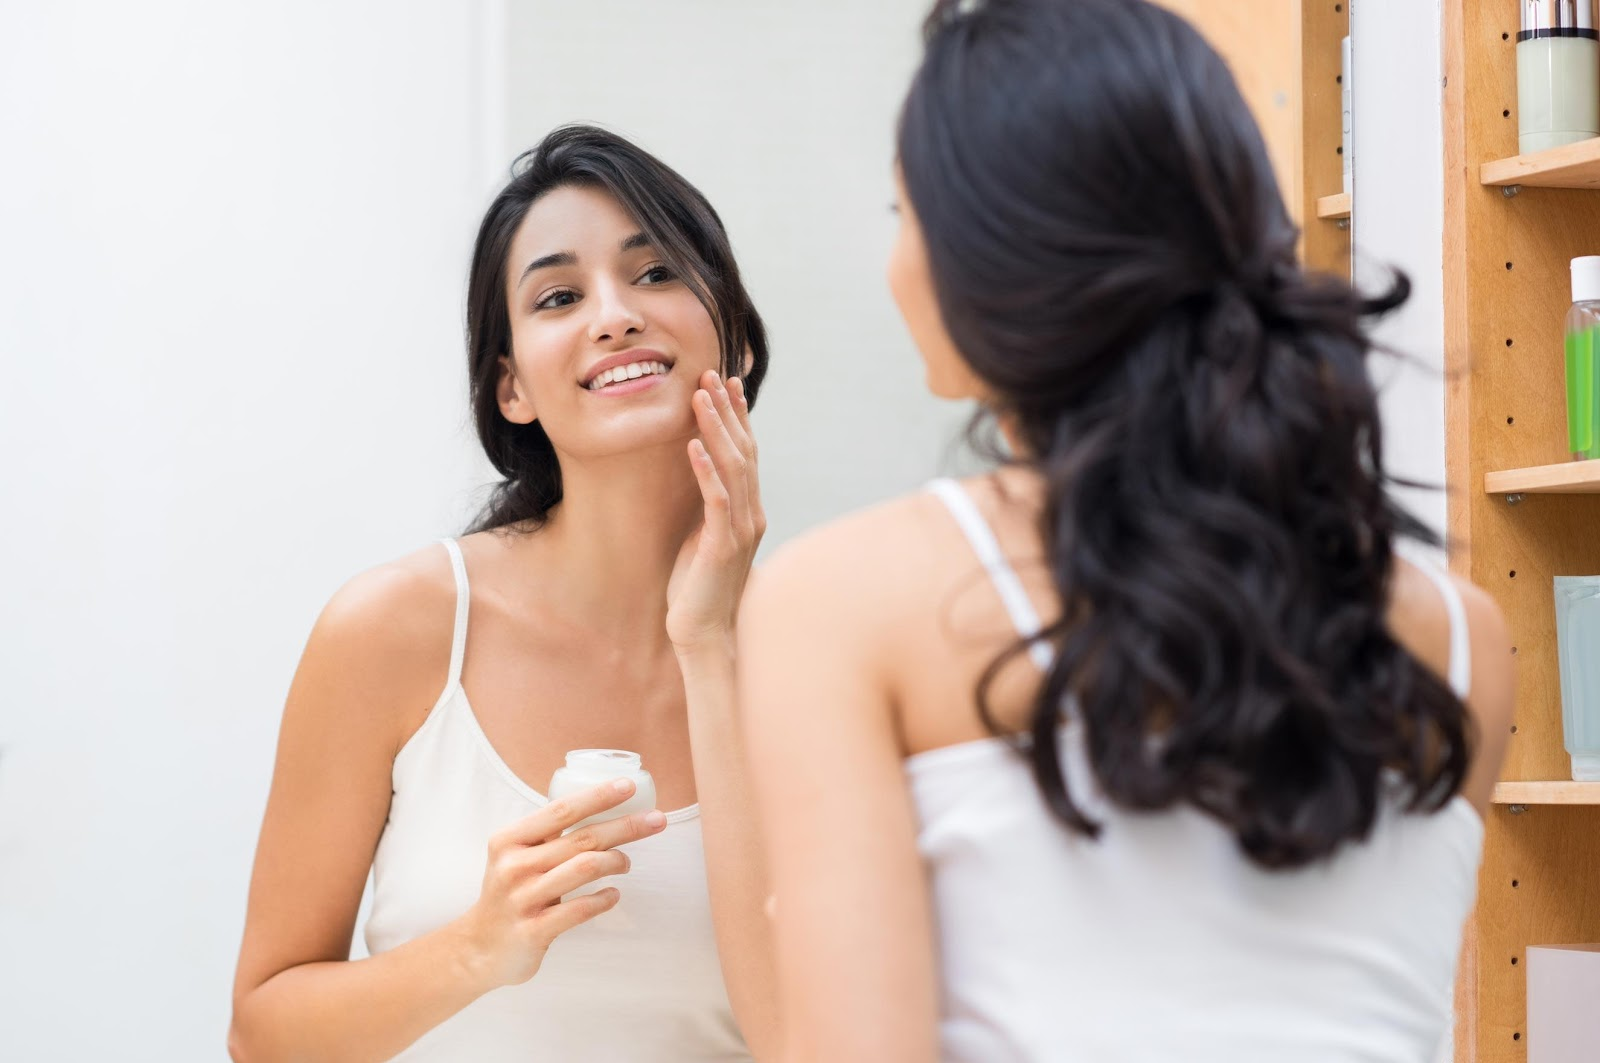 D:\Работа\SEO\GUEST POSTS\POSTS 2020\03.02.2020\Ryan 12 The Best Beauty Products for Brides-to-Be\shutterstock_564569767.jpg